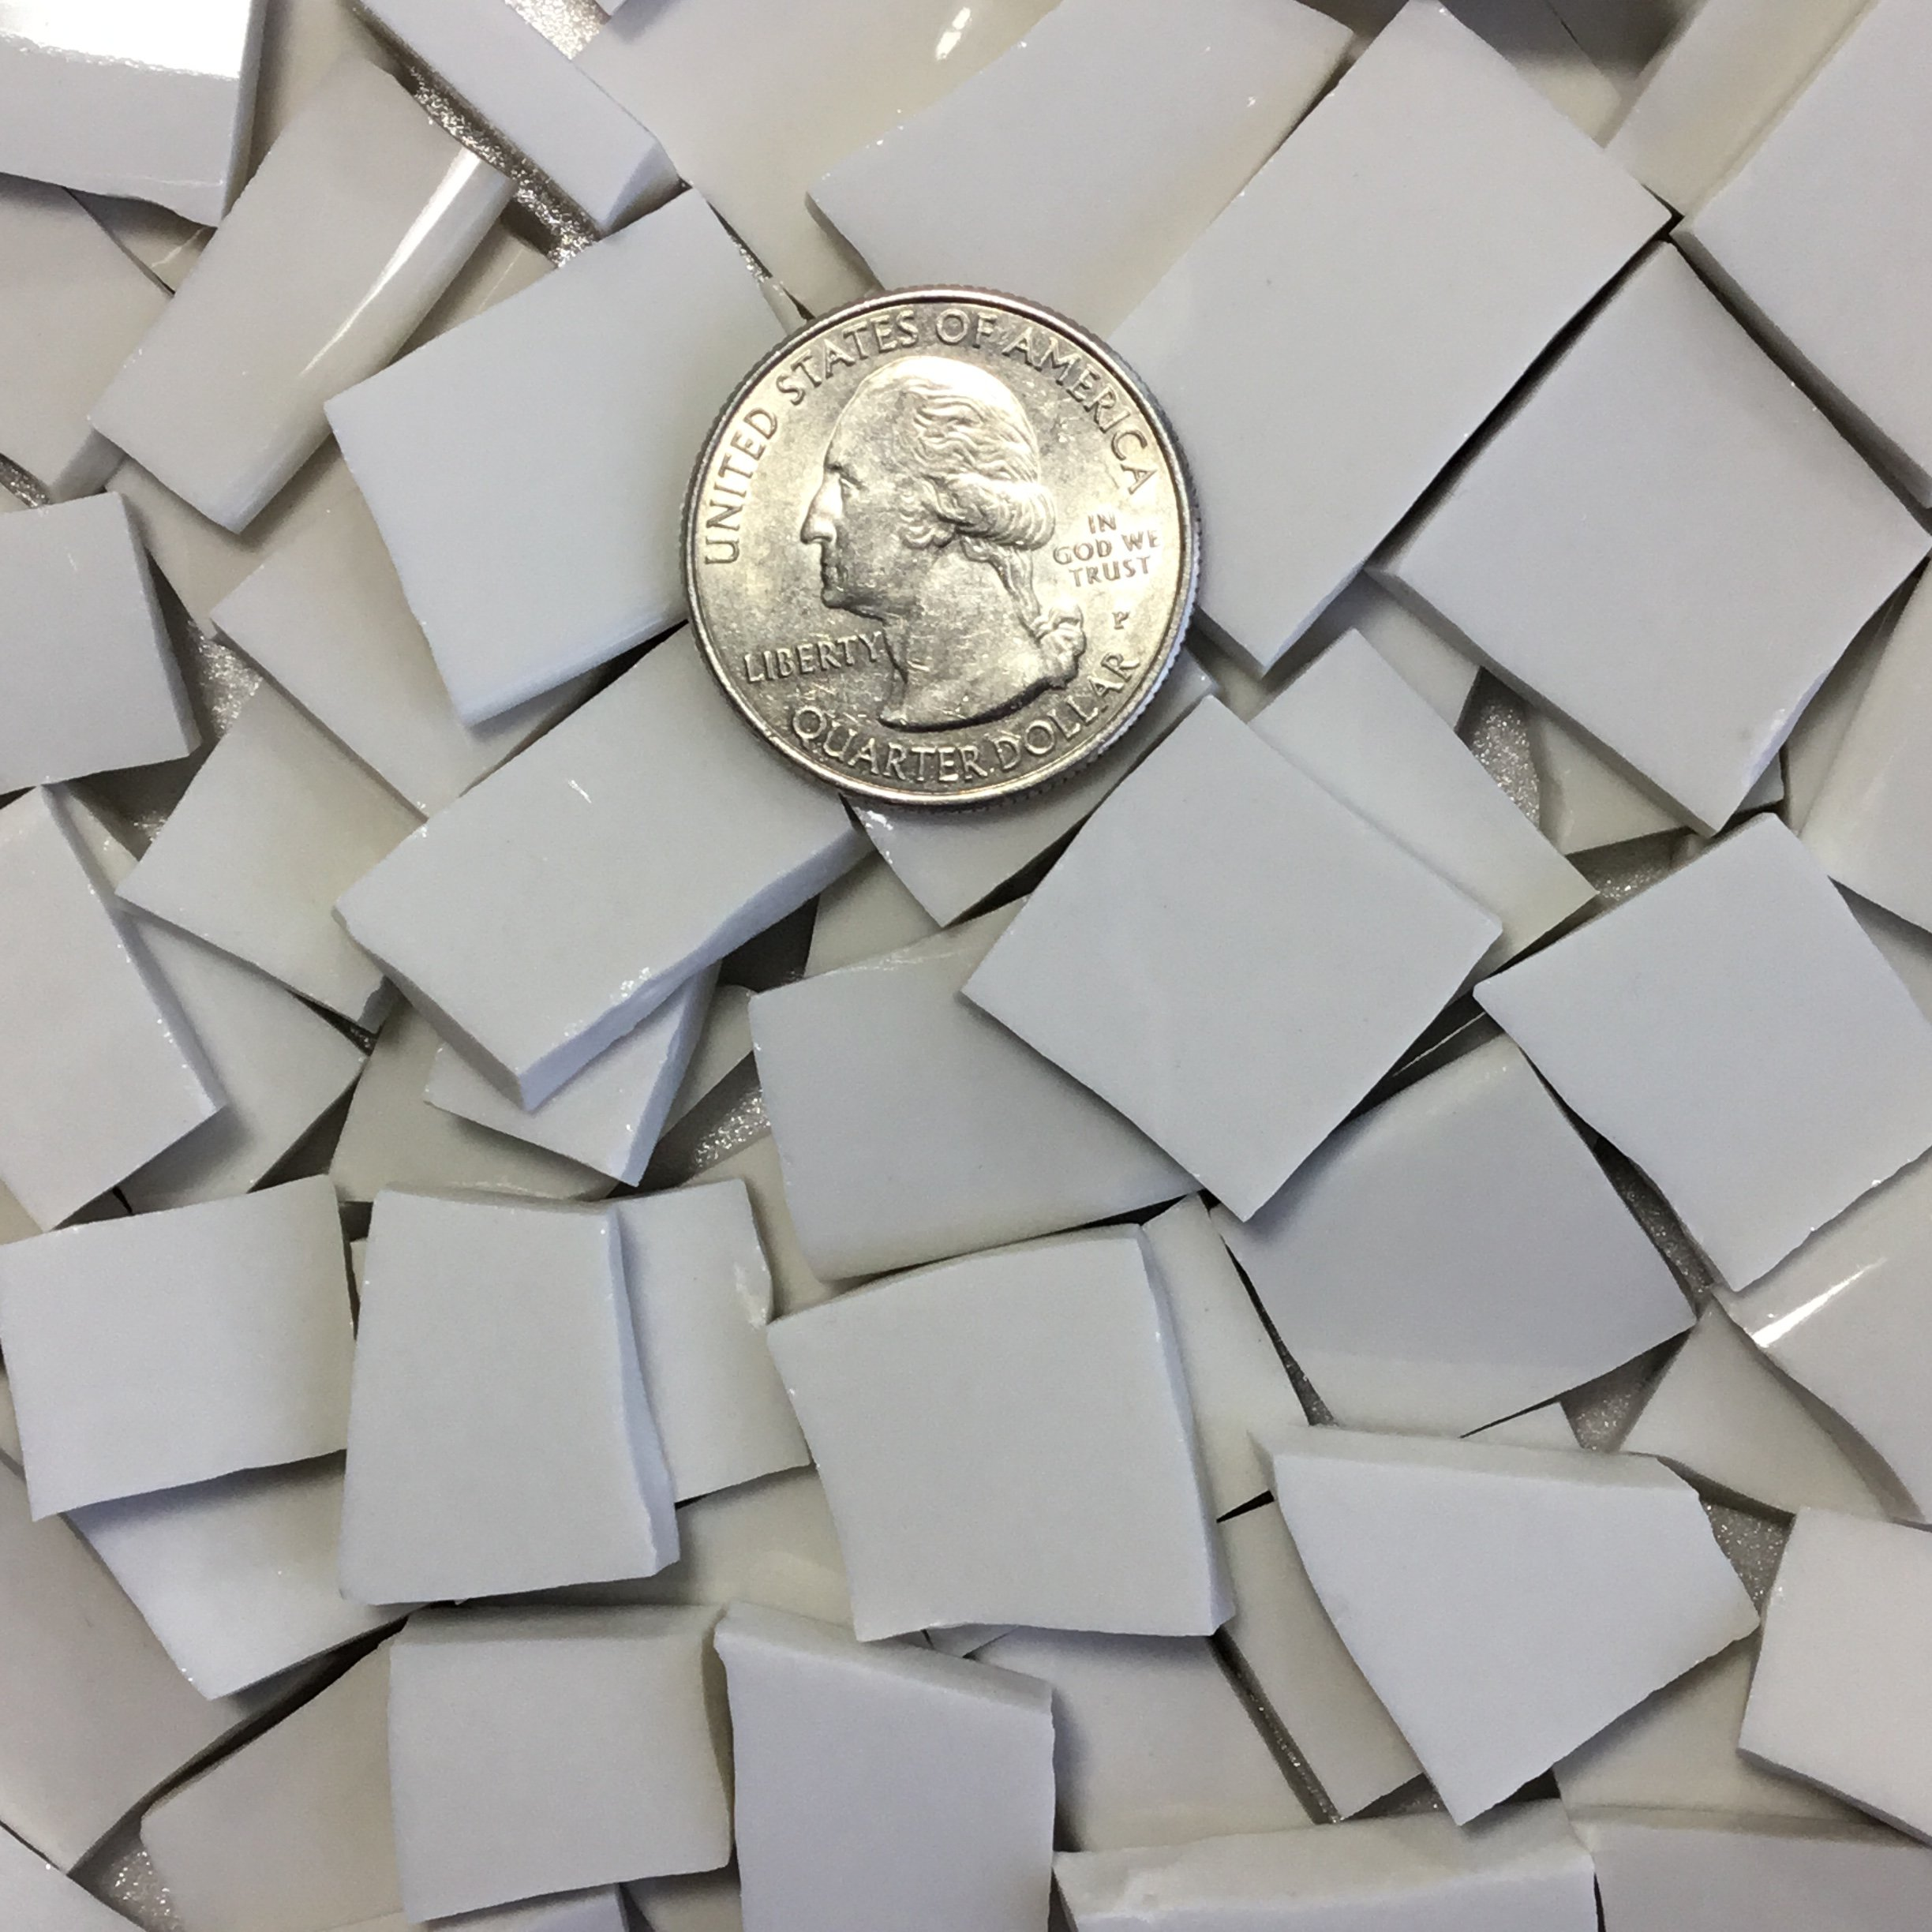 MOSAIC TILE ~ HAND CUT Dish China / Ceramic Pieces ~ Supply for Mosaics Arts & Crafts ~ 100 White ChinaTiles (T#379)